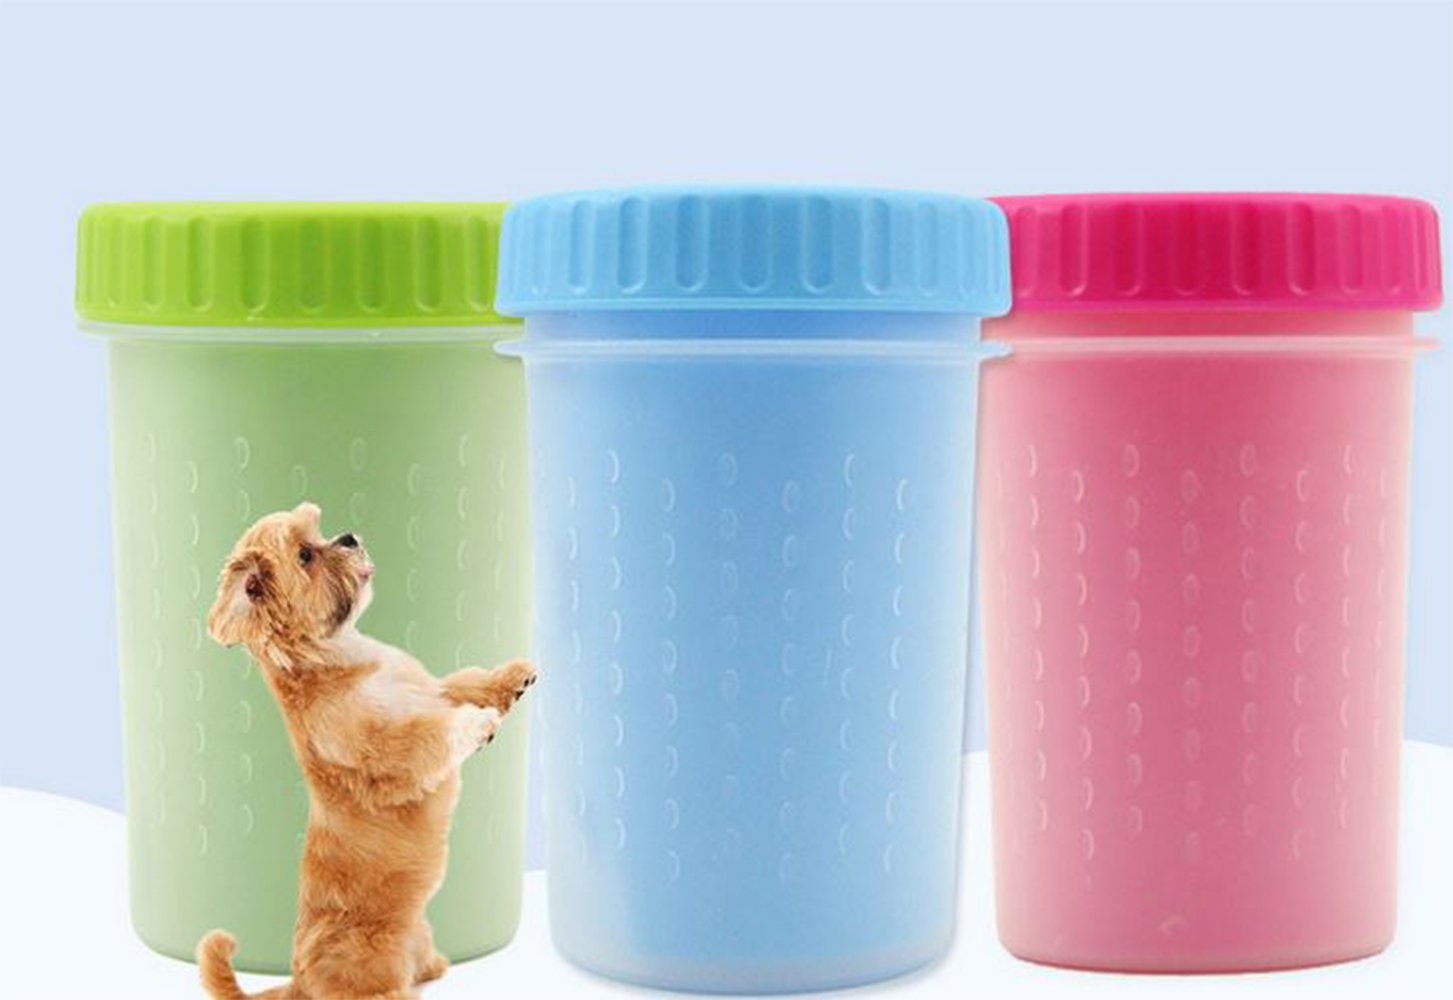 Pet Dog Portable Paw Cleaner Foot Washer Cup Outdoor Mud Washing Foot Nursing Dirt Buster (Large, Green) ZhangK